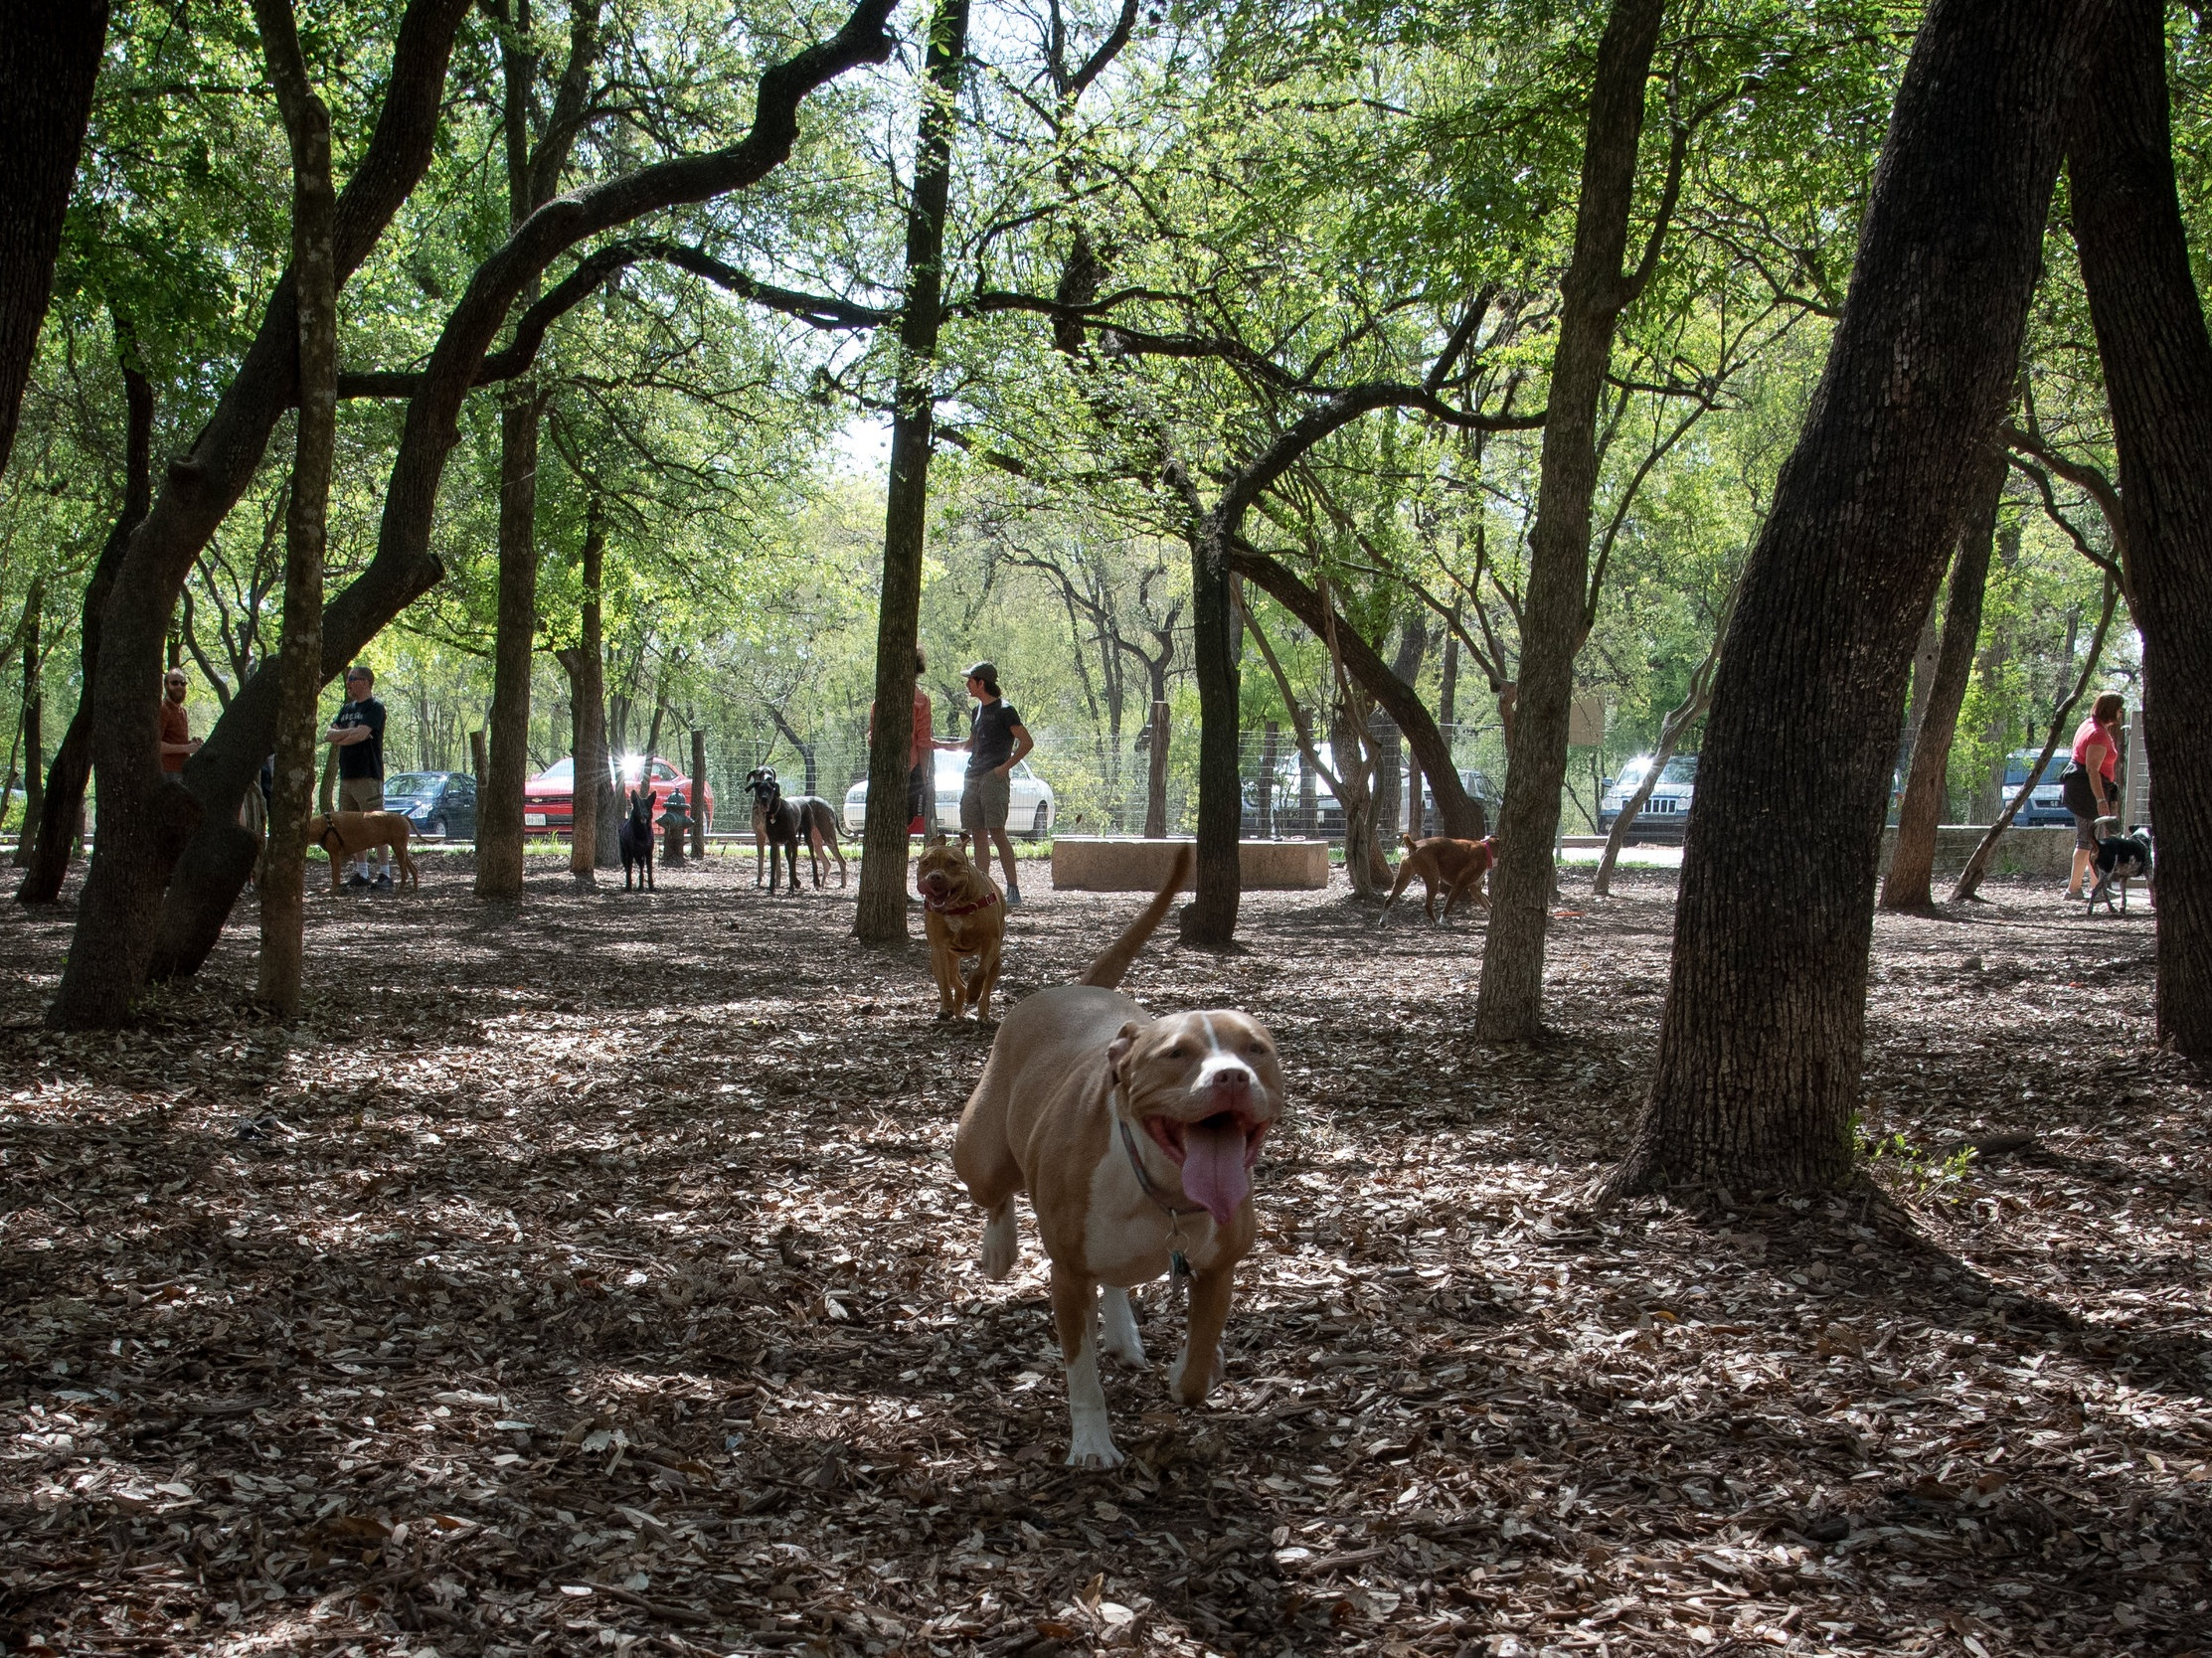 Dog Parks - Both sides of the park have dog parks. There is agility equipment, large and small dog areas, poop bags, trash receptacles, and drinking fountains for people and dogs.